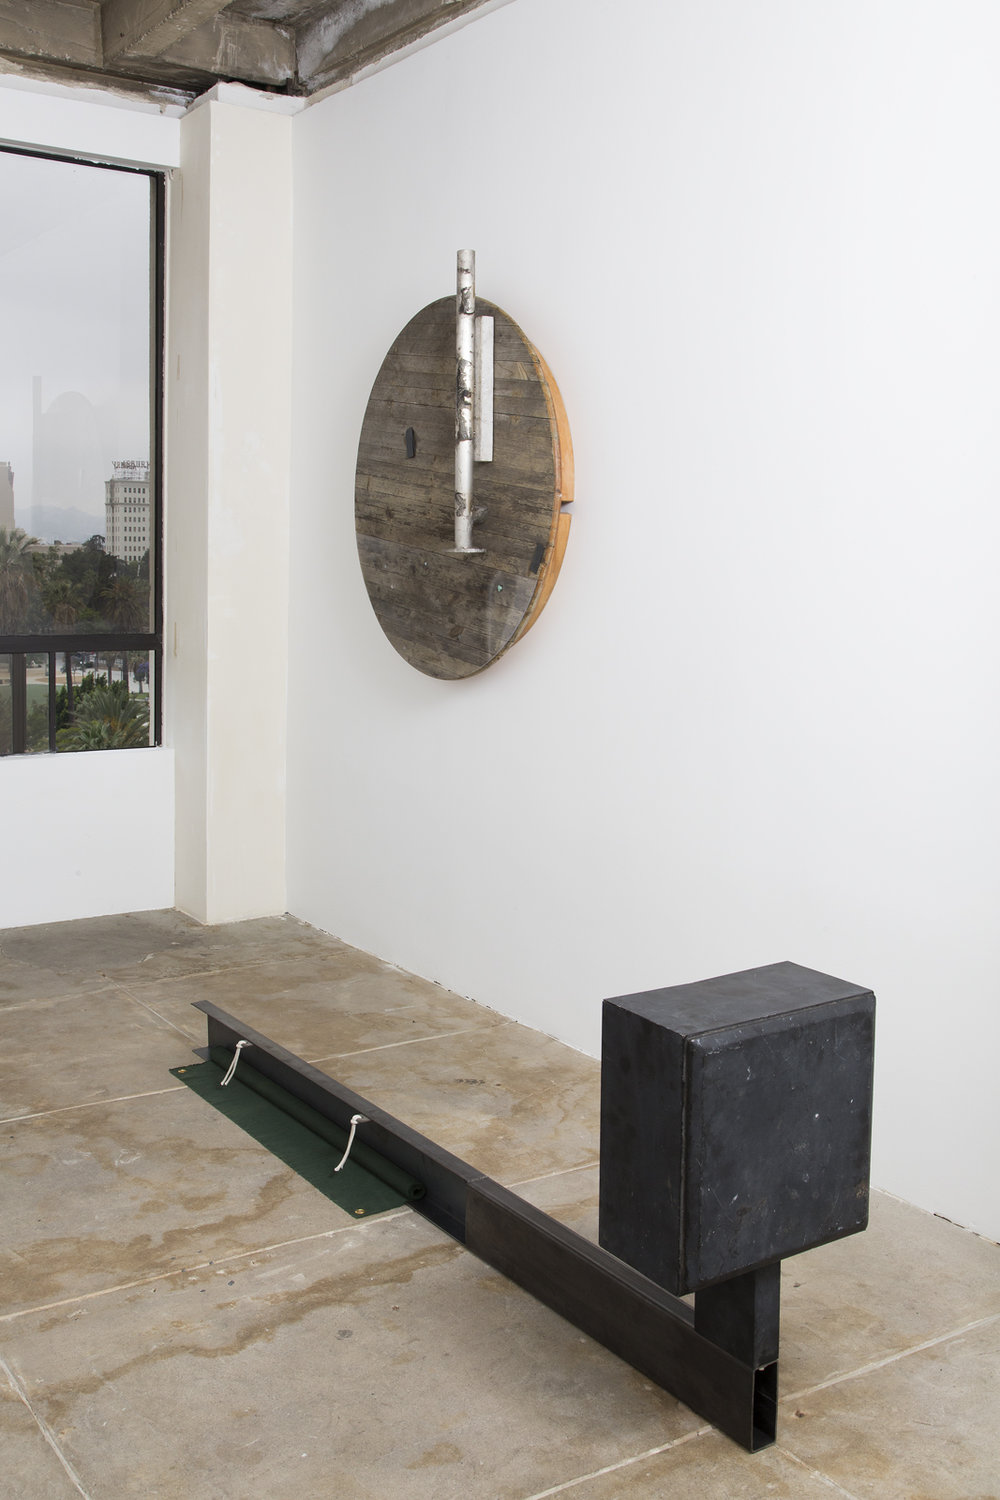 Nothing Now Anything Anytime  at Bad Reputation, Los Angeles, Installation view, 2018